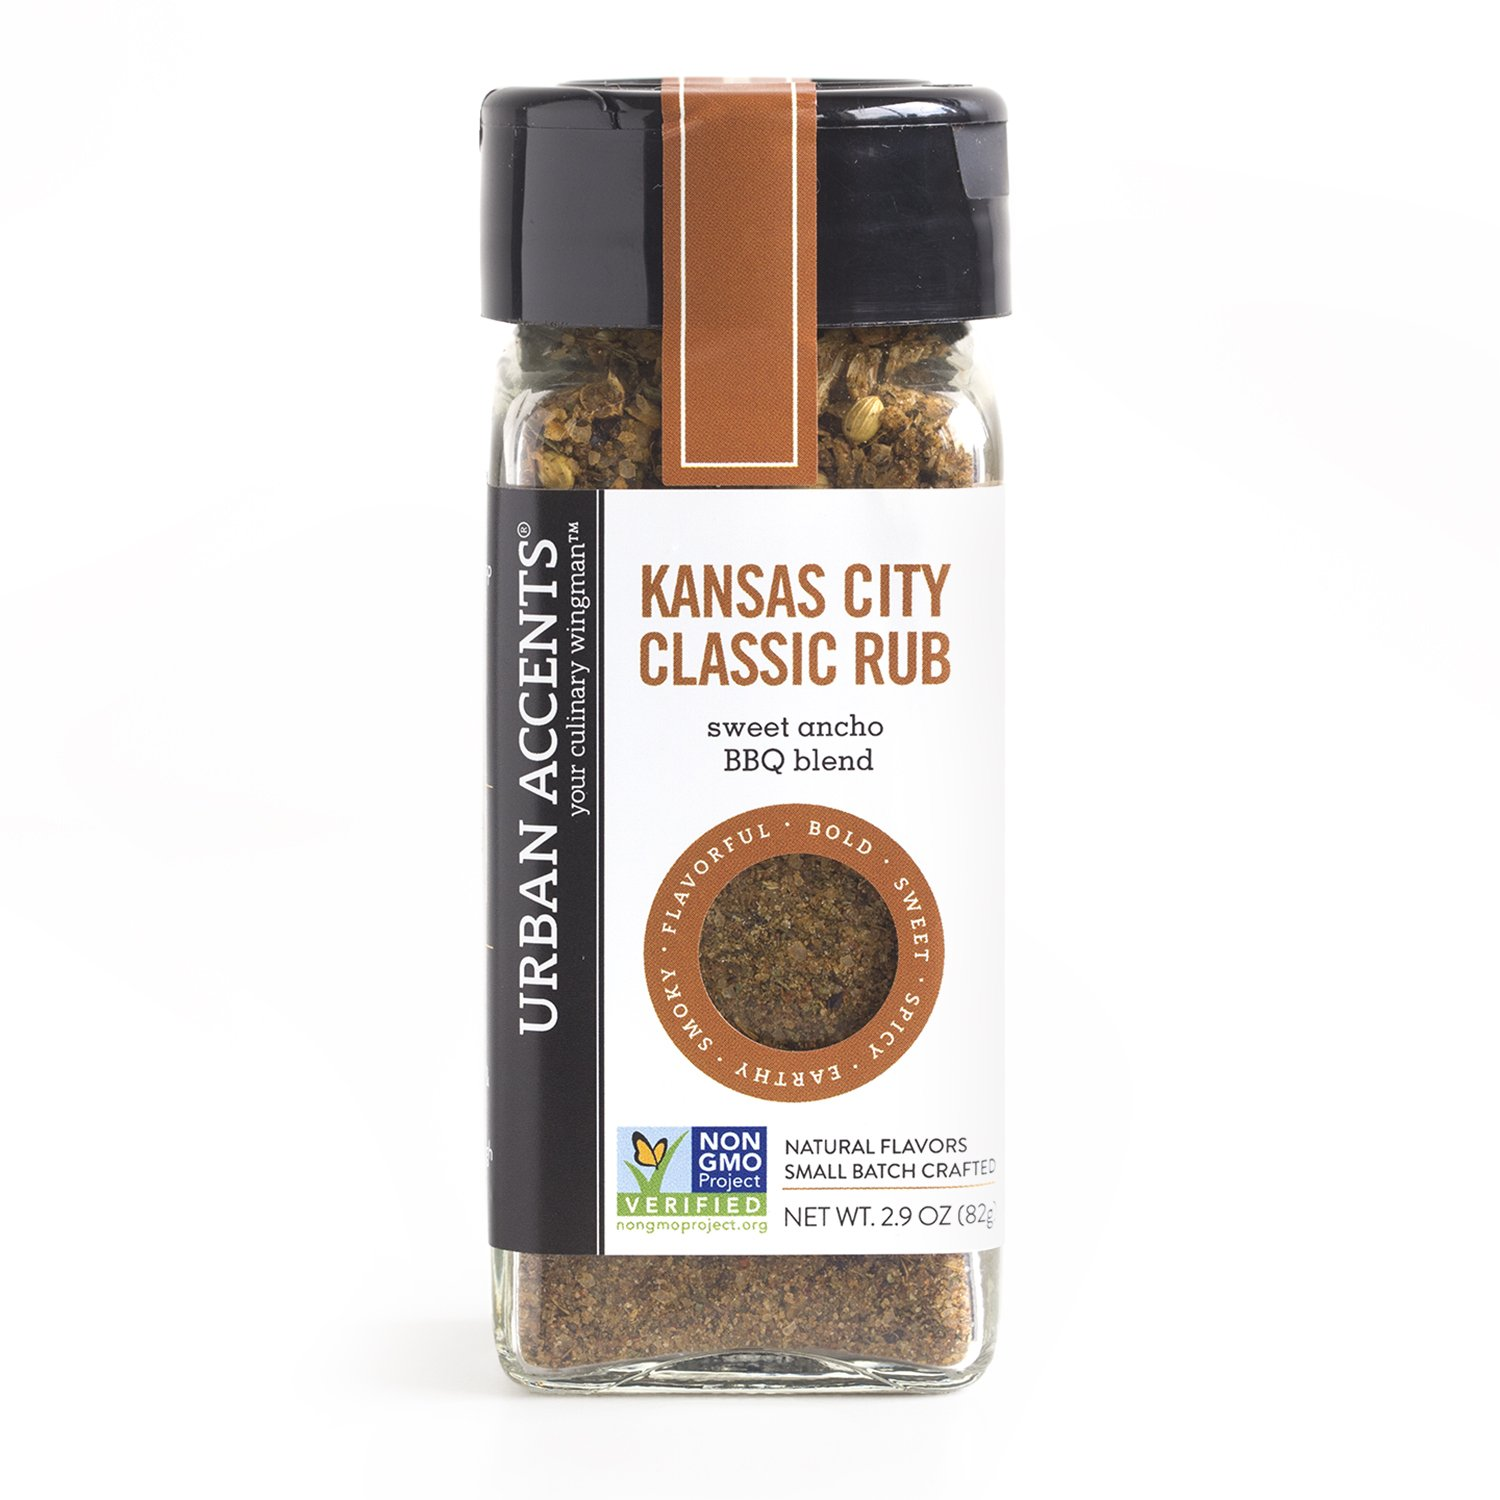 Kansas City Classic Rub – Gluten Free Seasoning Mix for Grilling and Roasting - Urban Accents, 2.9-Ounce